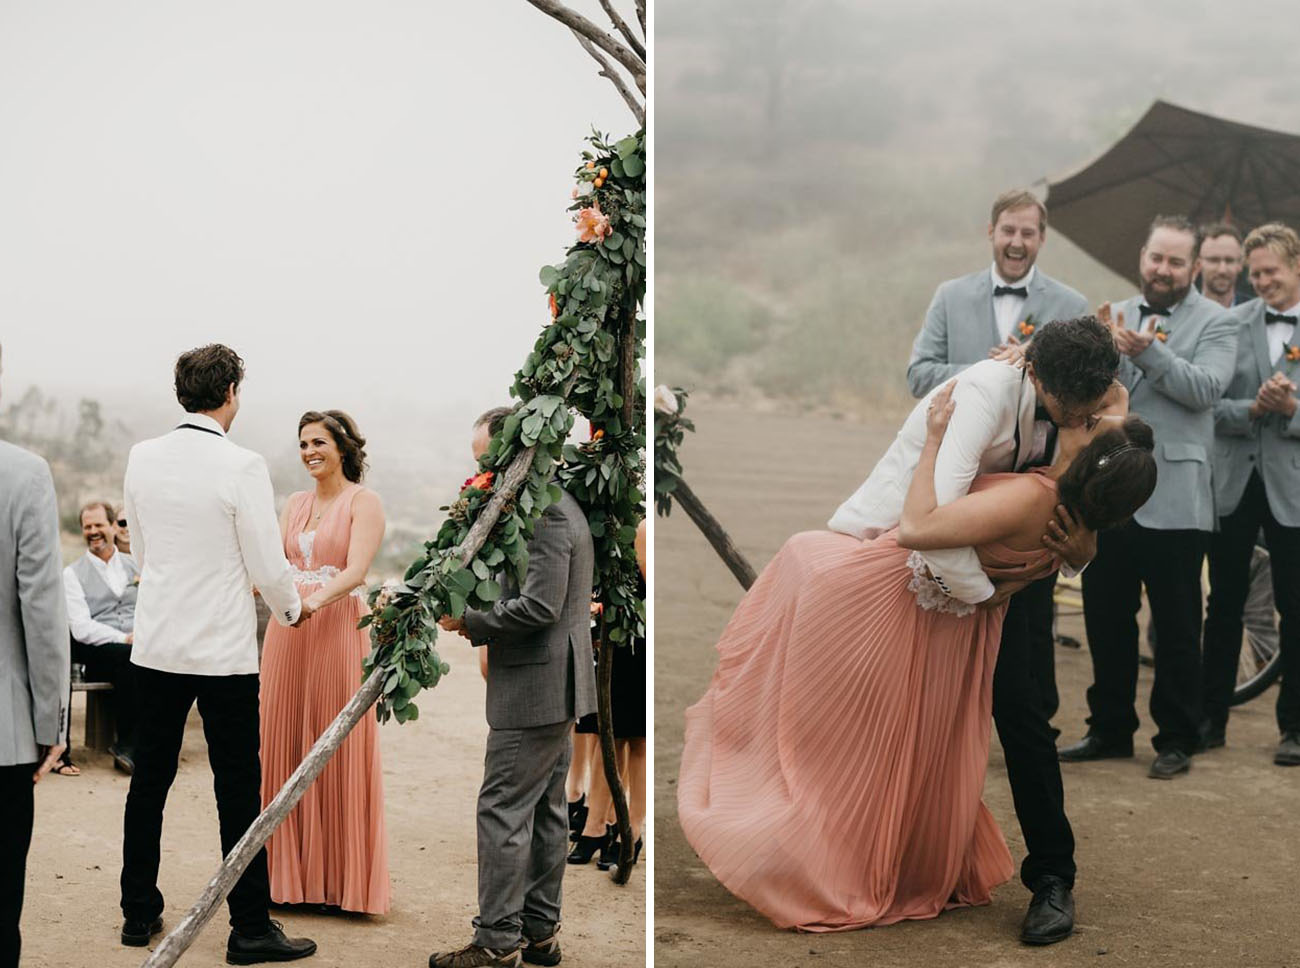 emecula Pistachio Farm Wedding